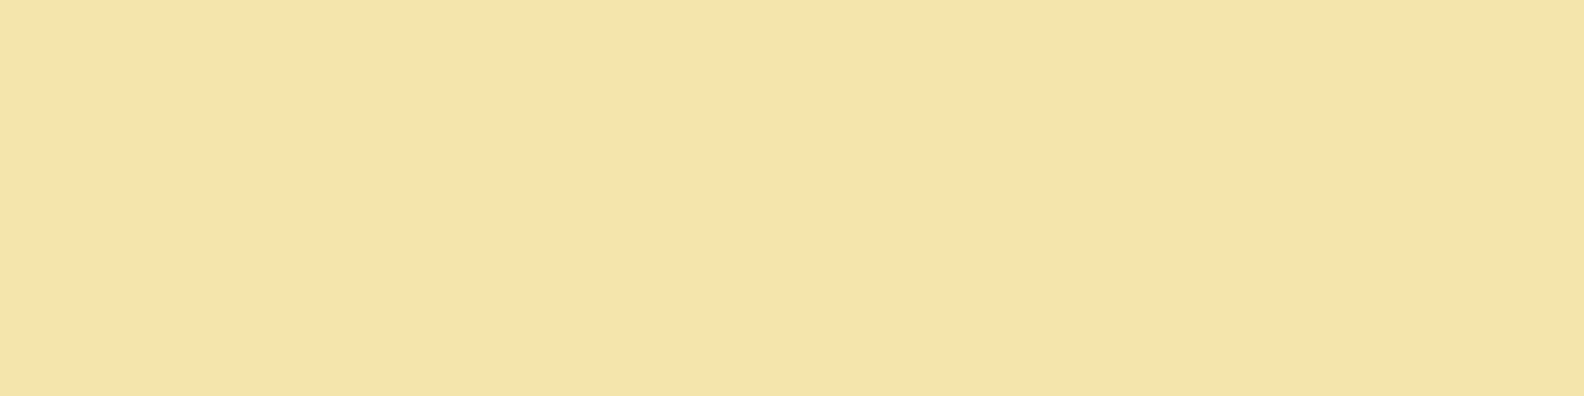 1584x396 Medium Champagne Solid Color Background